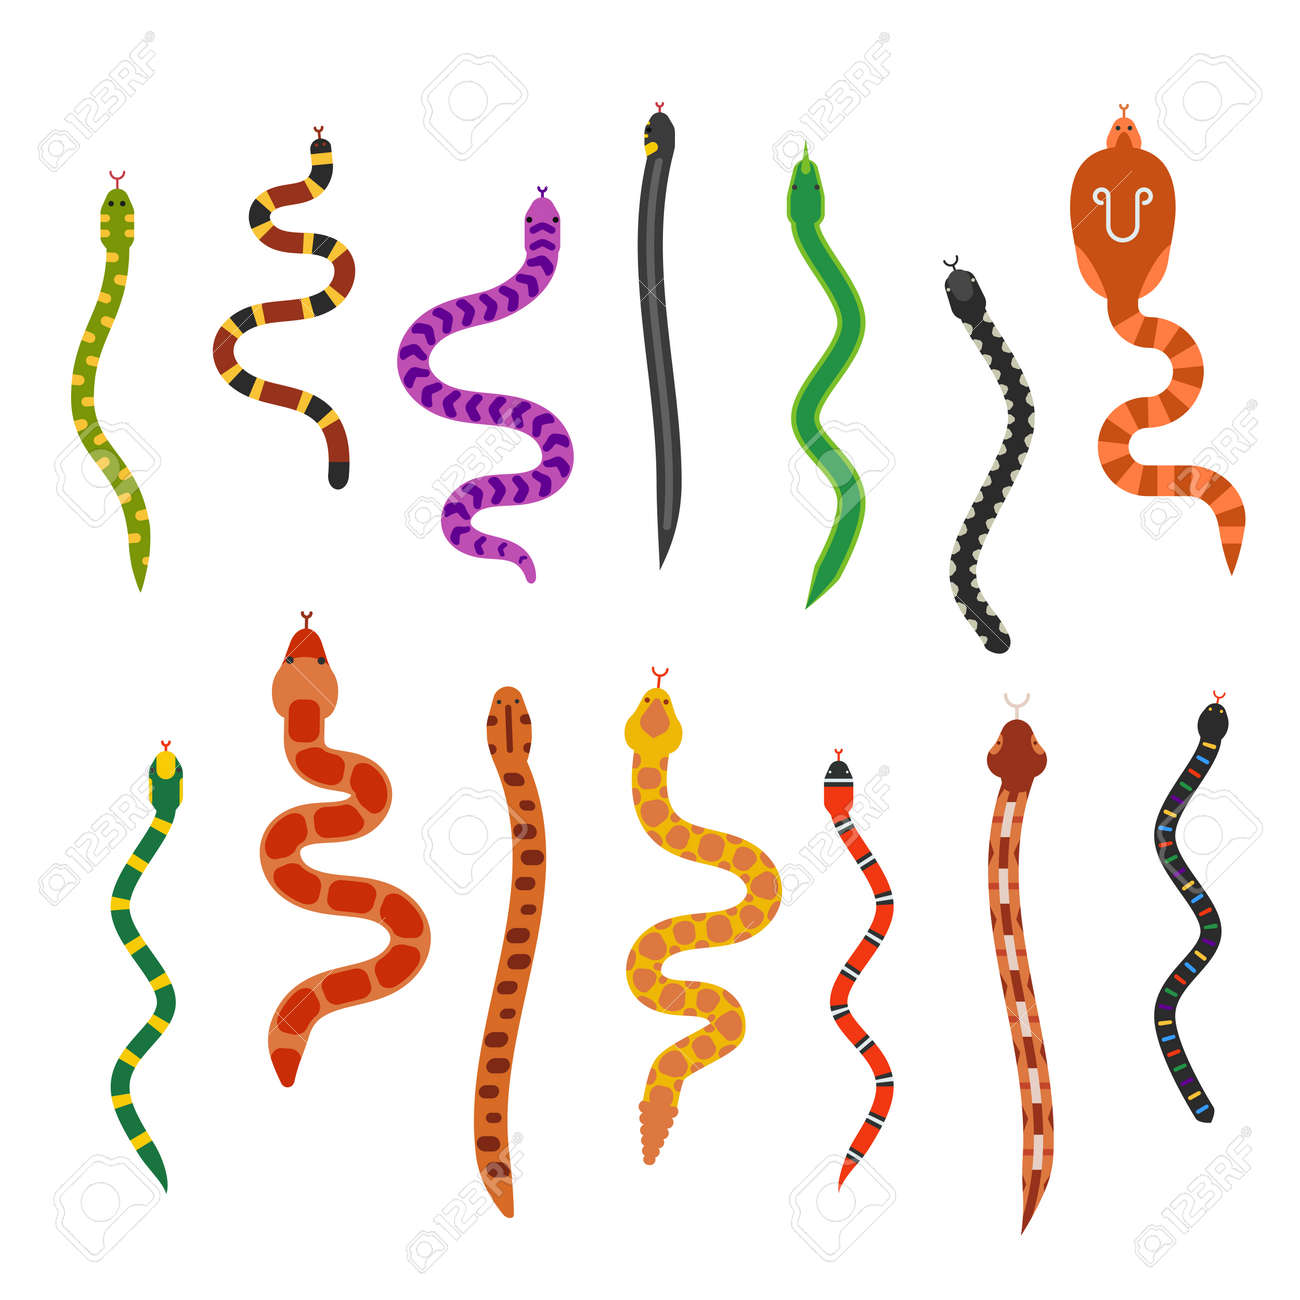 Vector flat snakes collection isolted on shite background. Vector snakes flat style. Different snakes skin texture - 51825347